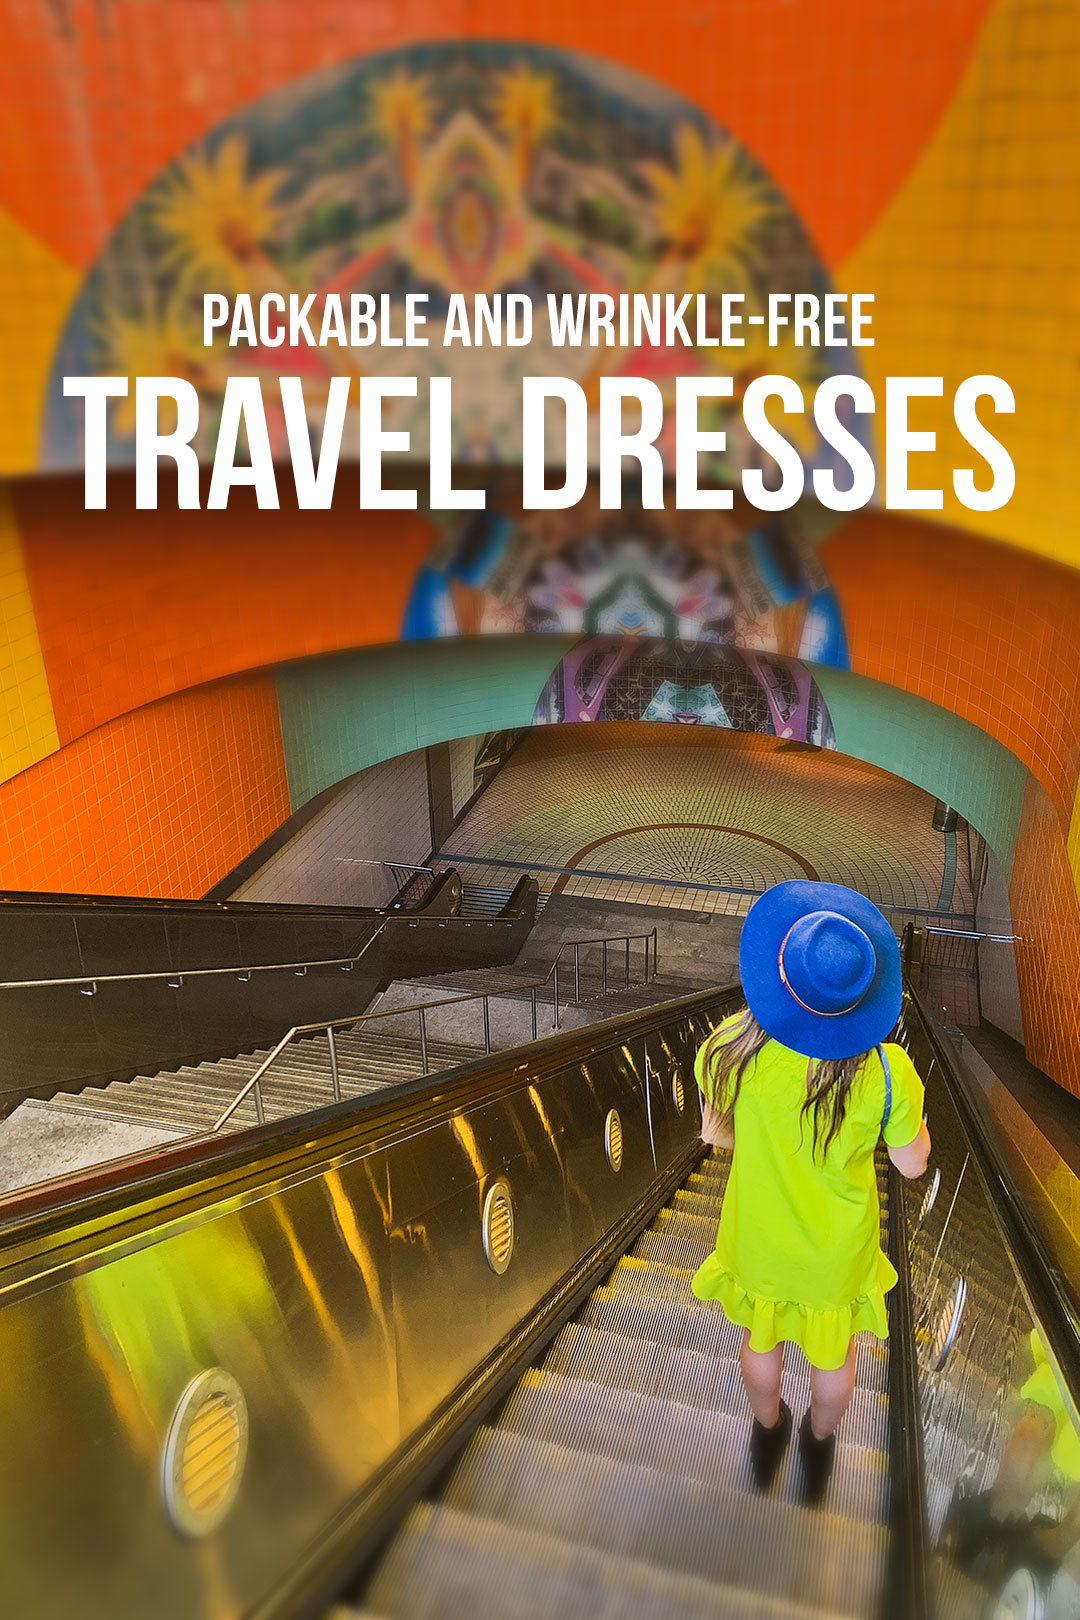 The Best Wrinkle Free and Packable Dresses for Travel